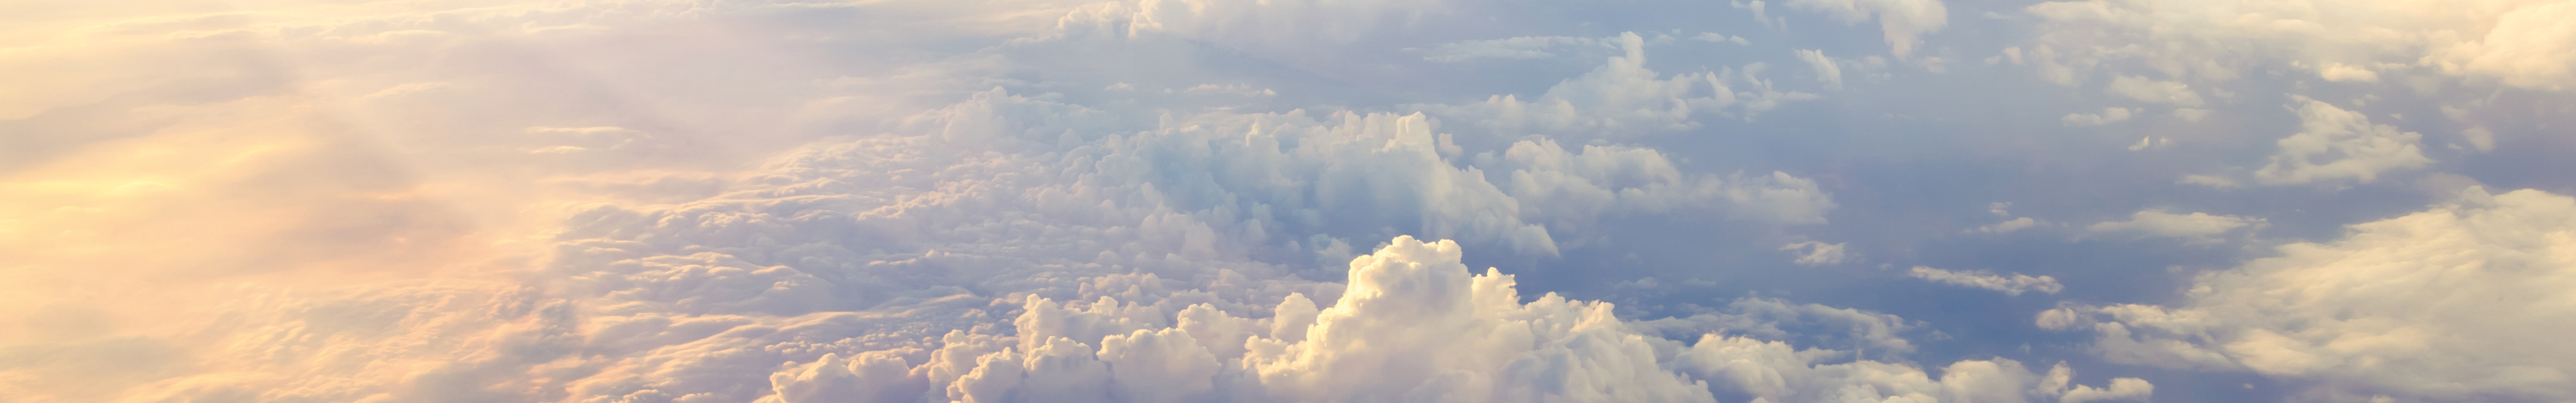 clouds in the sky above